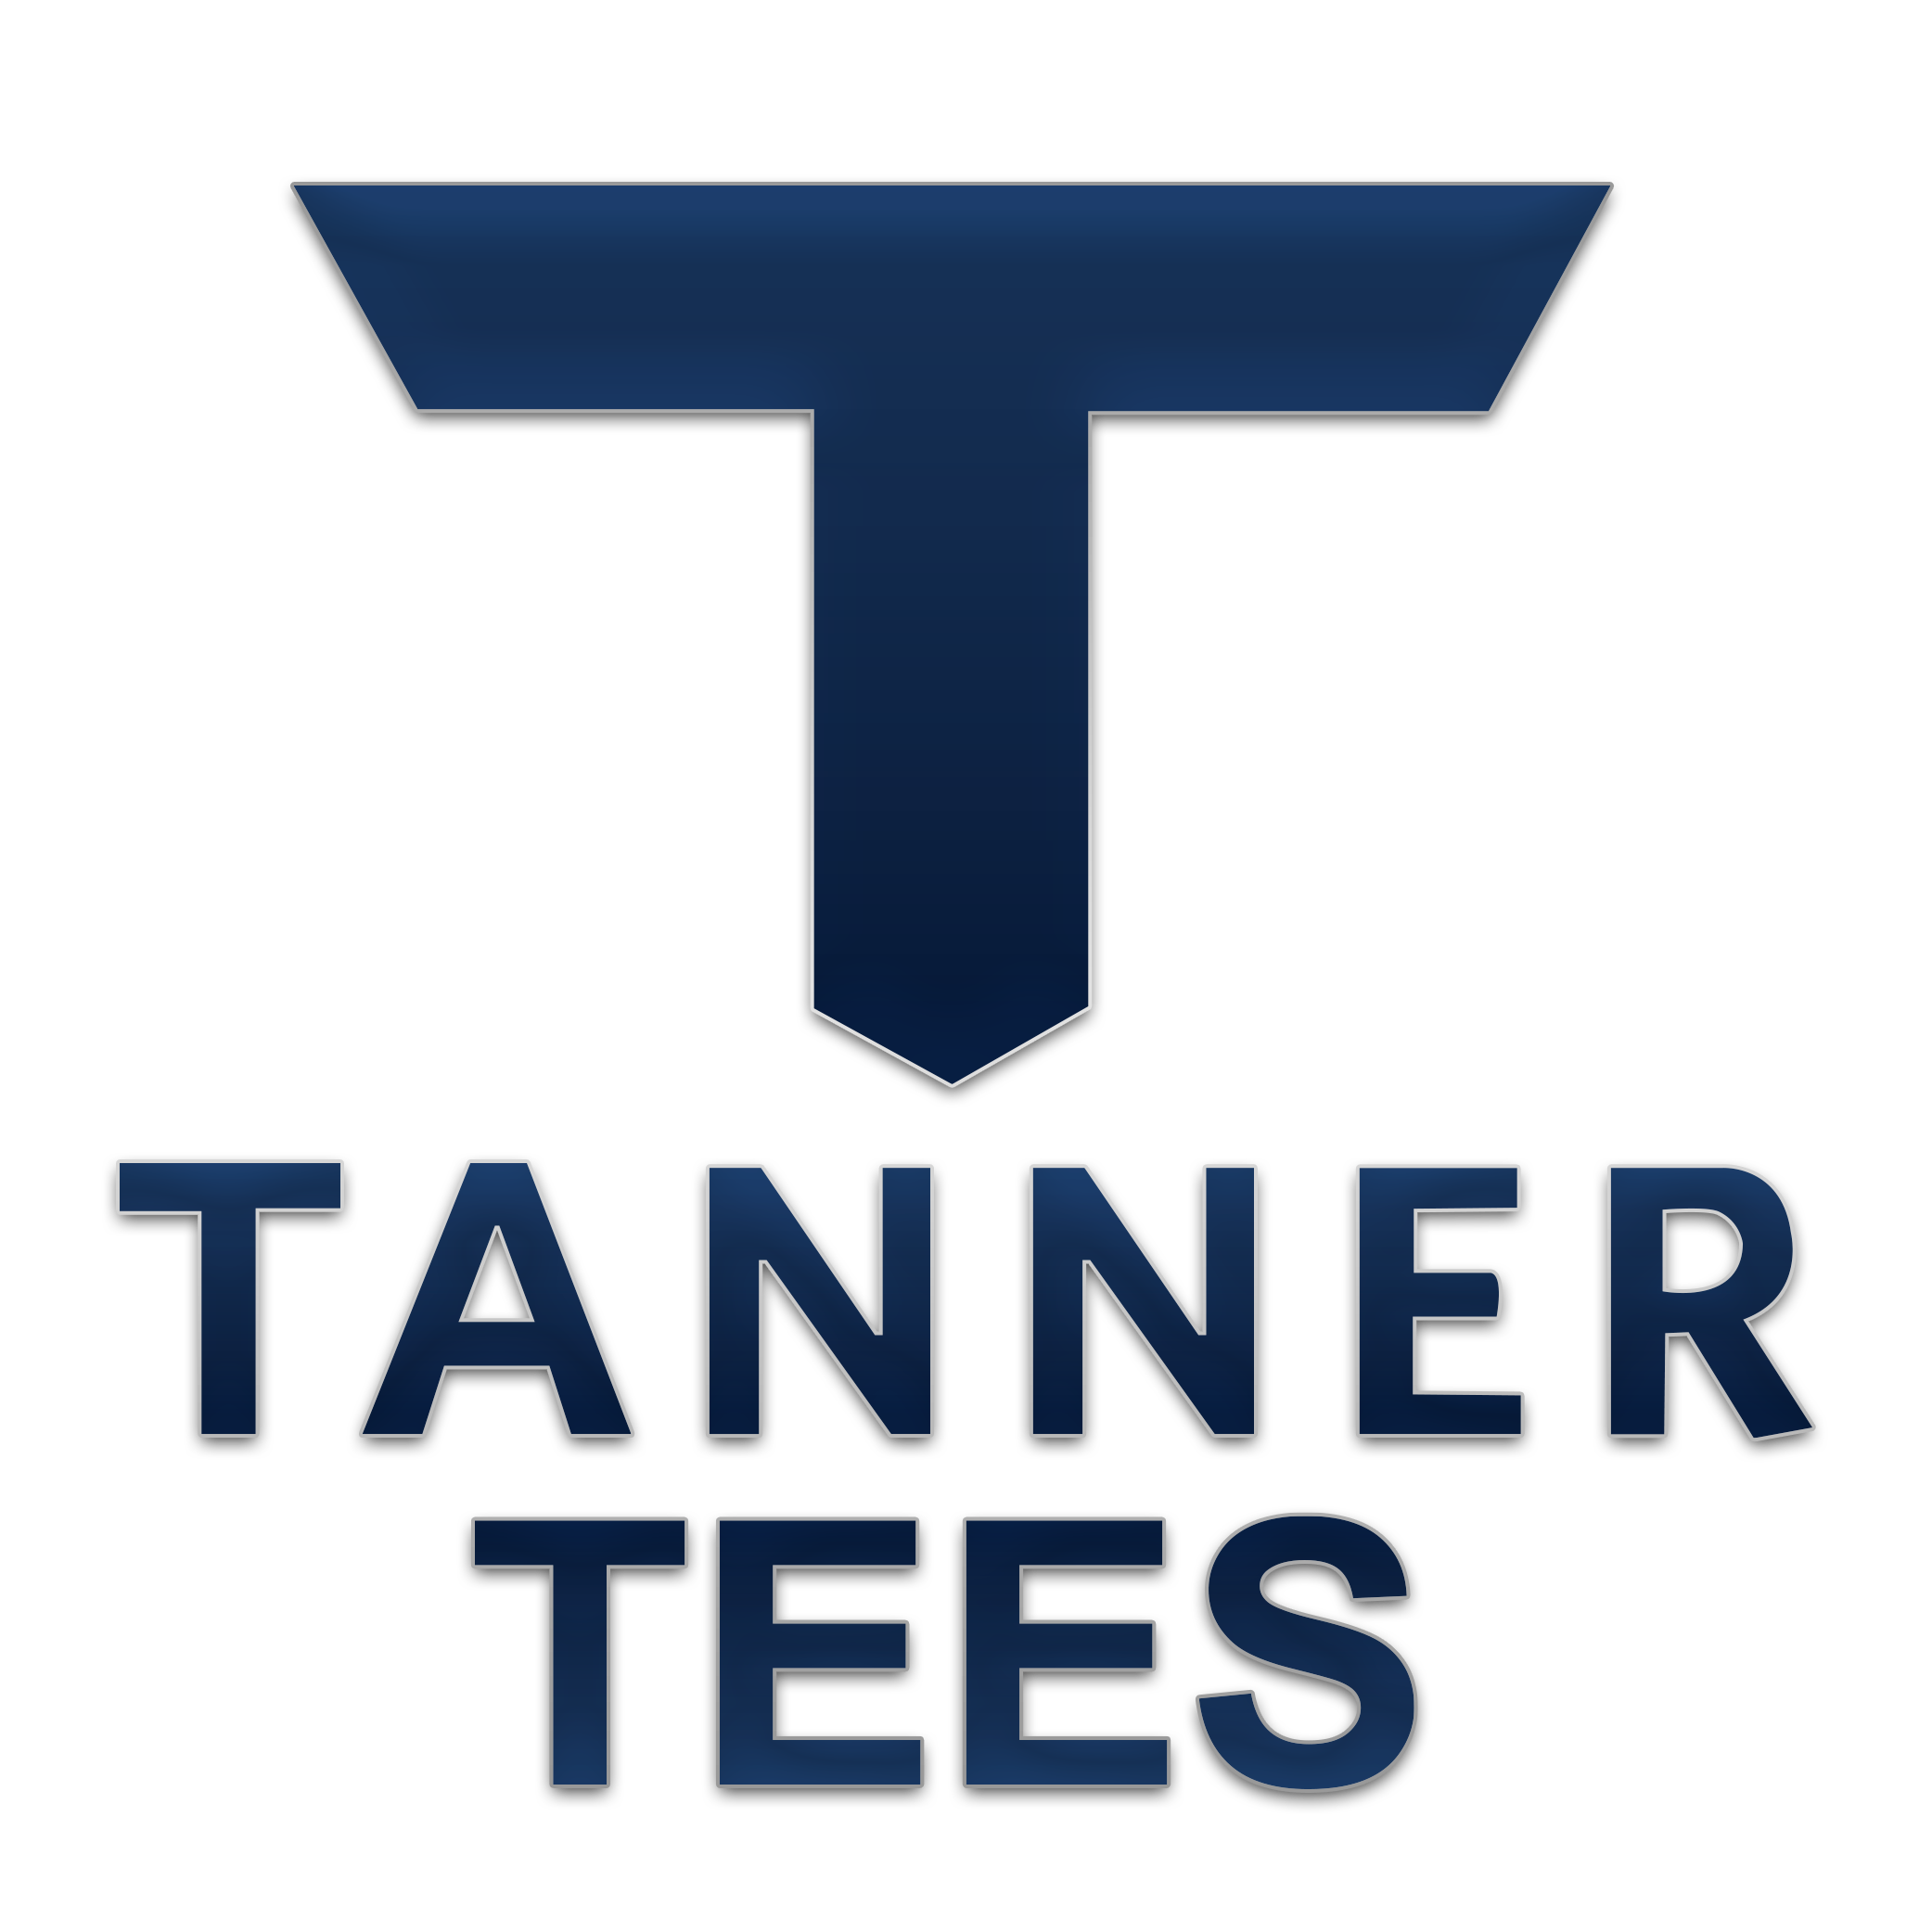 tanner-tees-stacked-logo-blue.png